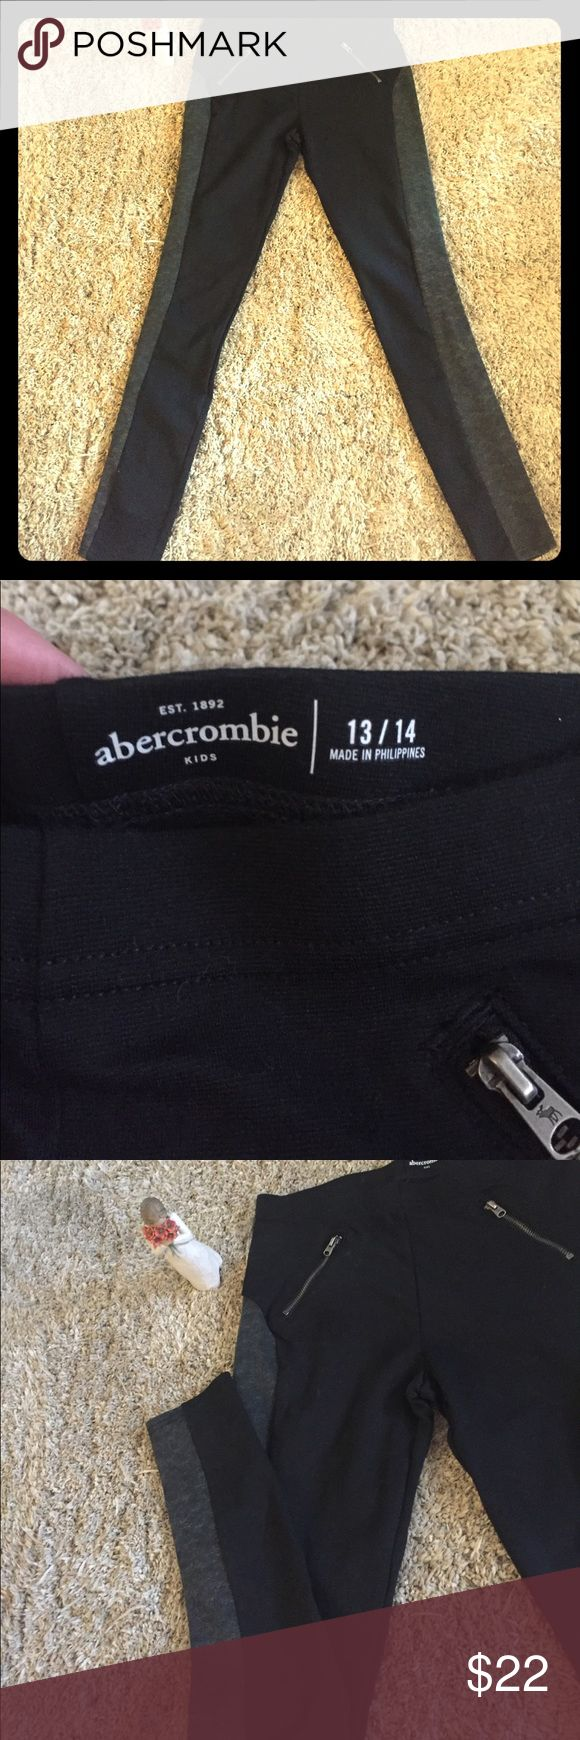 Abercrombie Girls Dress Leggings ❤️🖤 Never worn; tags removed. Quality leggings for a young lady that can be dressed down for school or up for an event. Simply cannot let these leggings go to waste! abercrombie kids Pants Leggings